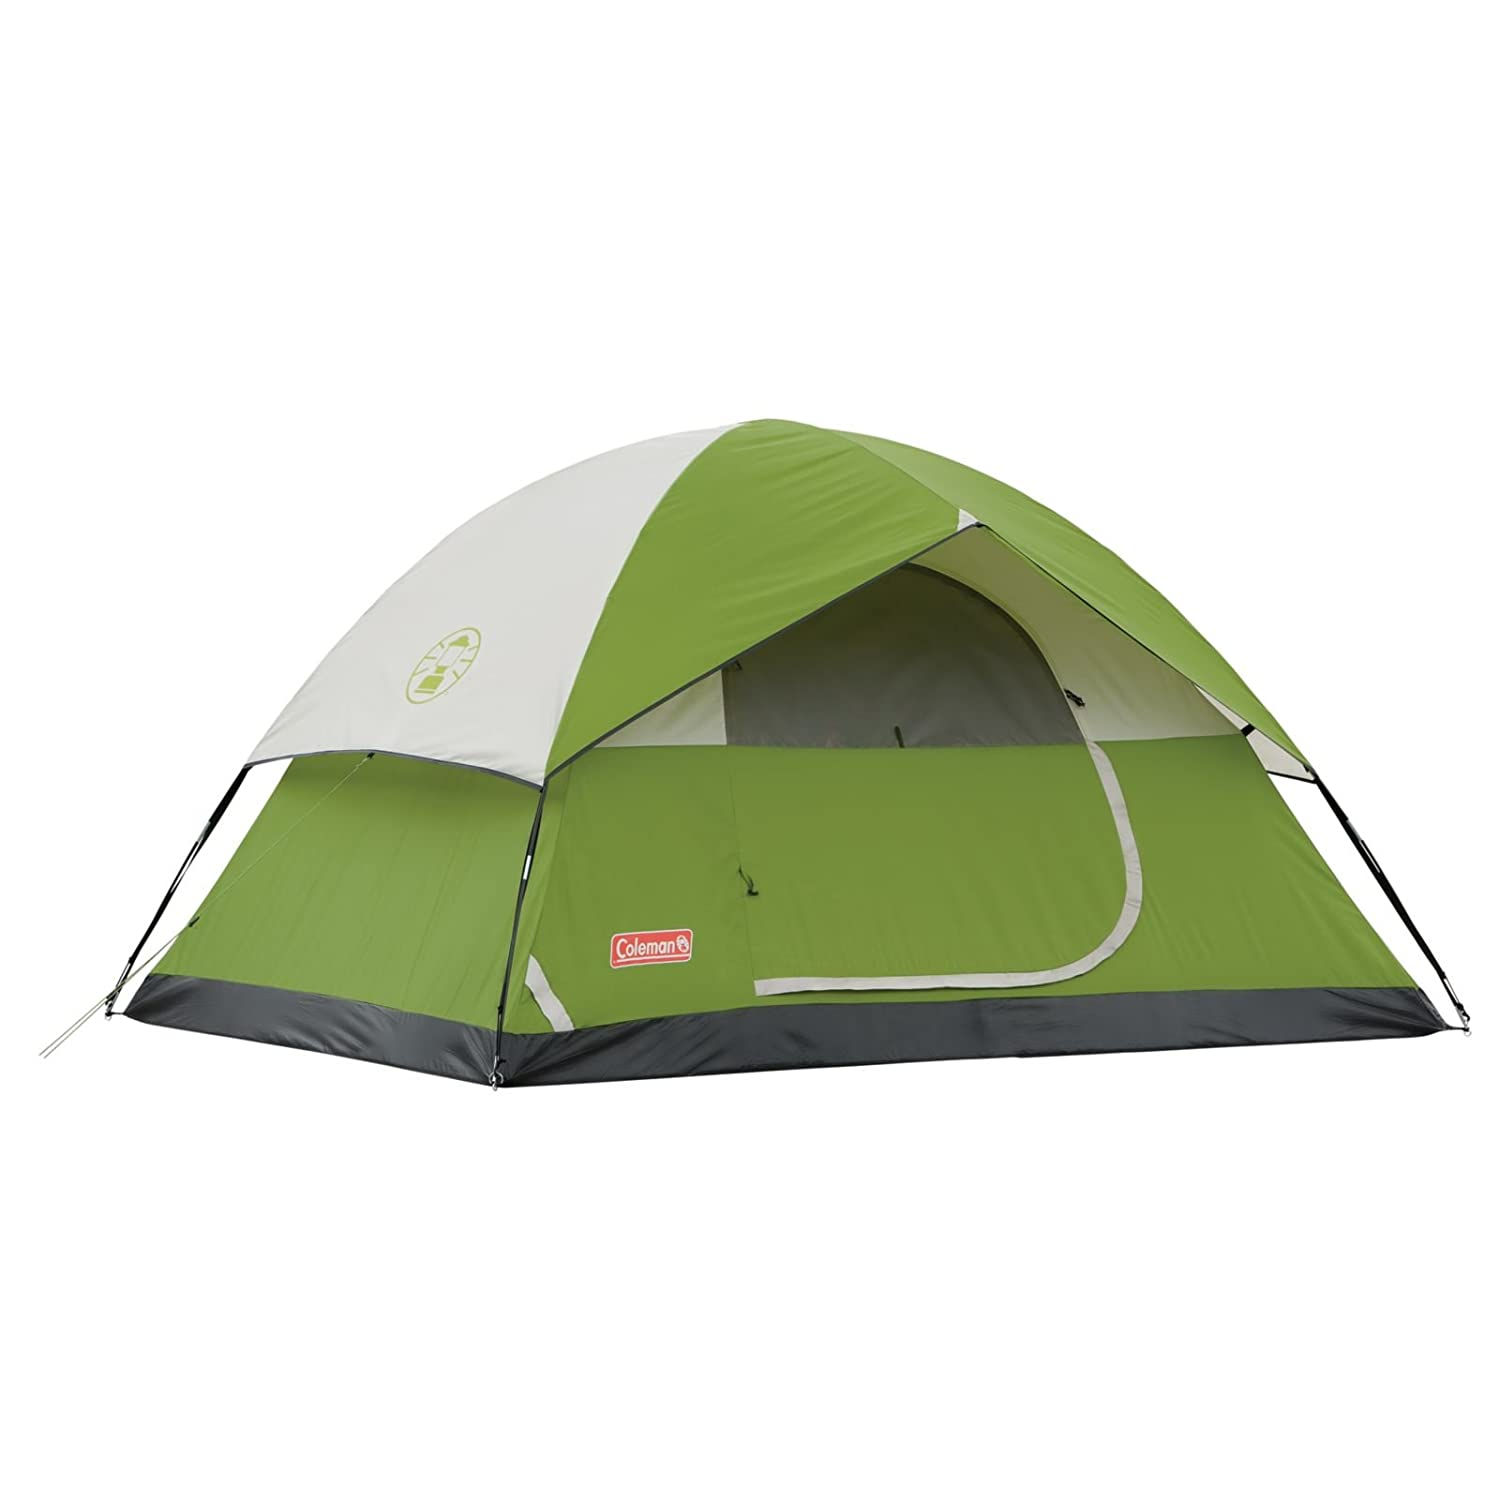 Sundome 4 Person Camping Tents by Coleman